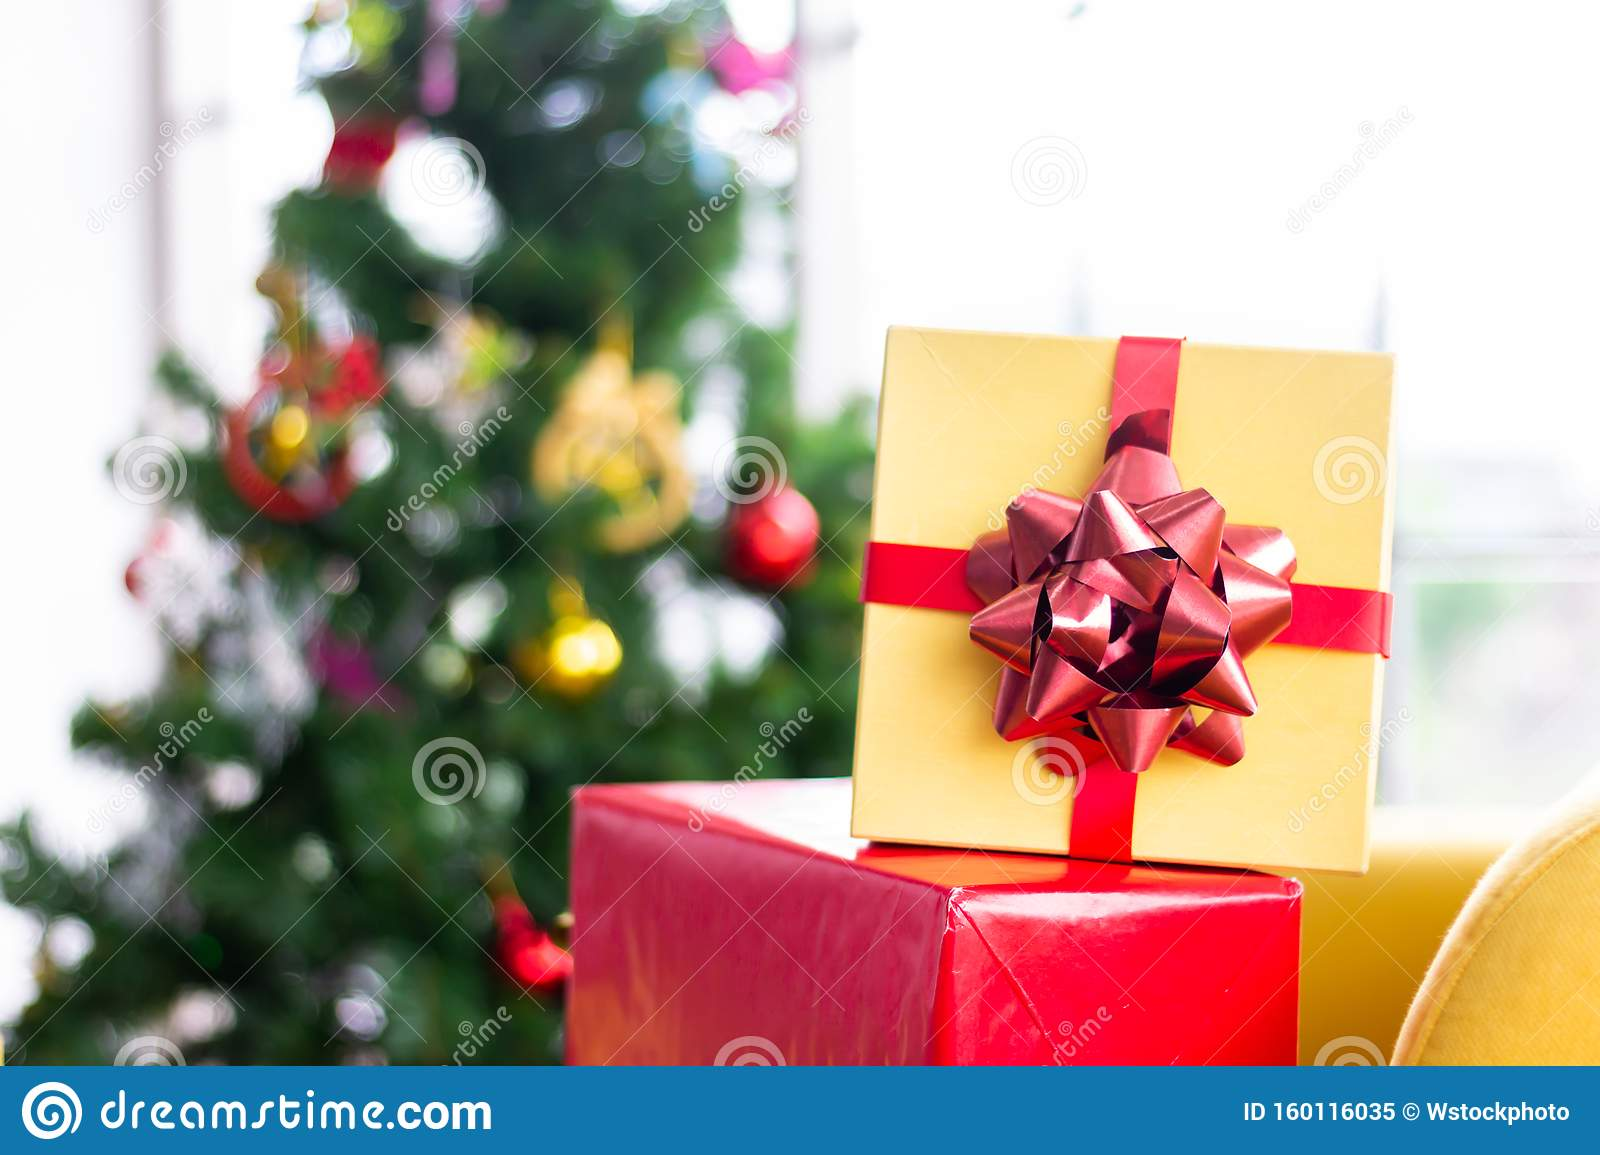 Room Decorated With Christmas Trees And A Gift Box With A Ribbon Ideas To Welcome The Upcoming Christmas Season Stock Image Image Of Gifts Decoration 160116035